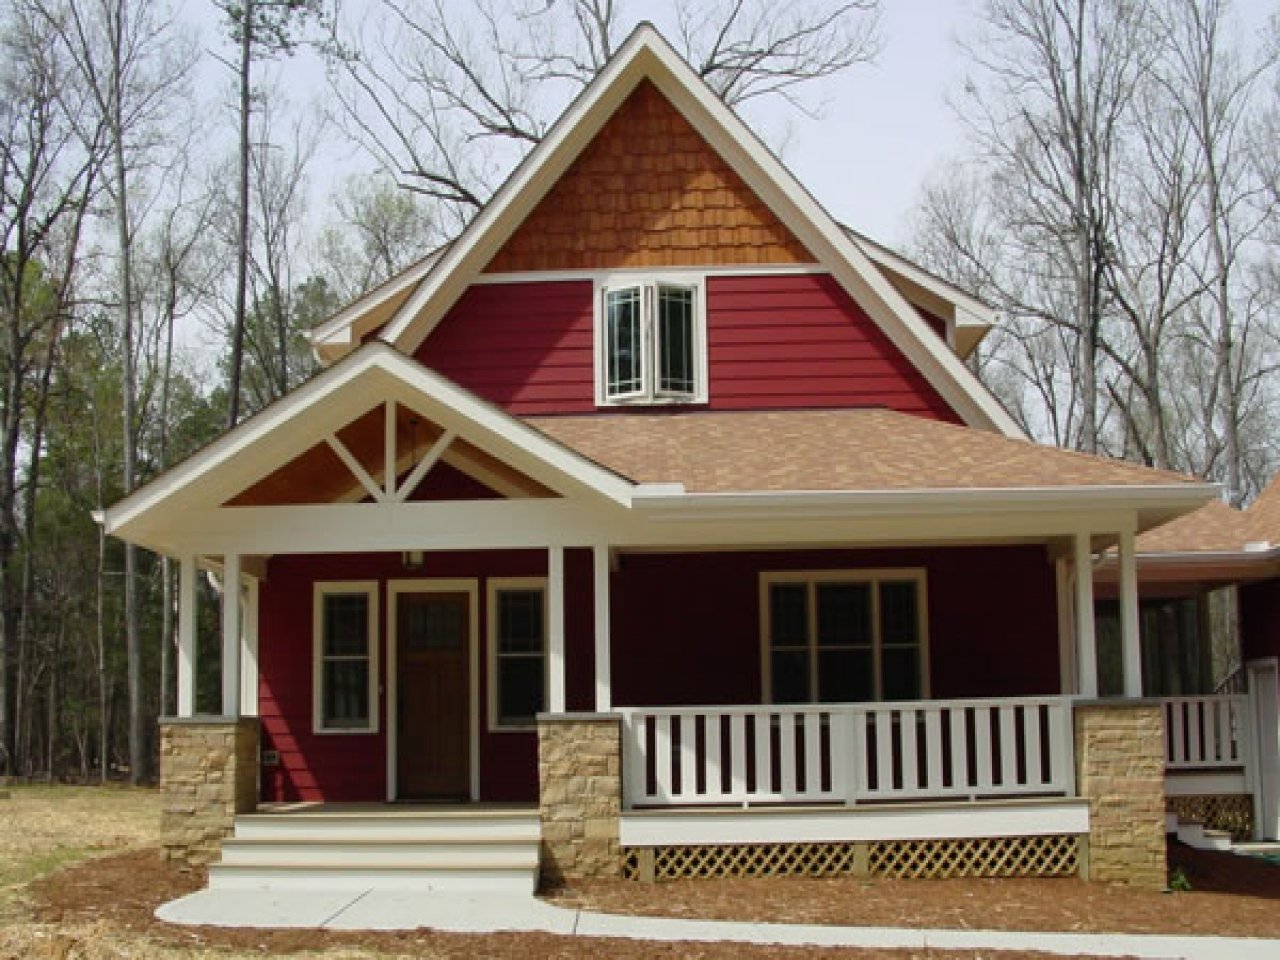 Craftsman house plans simple roof classic craftsman for Craftsman bungalow home plans